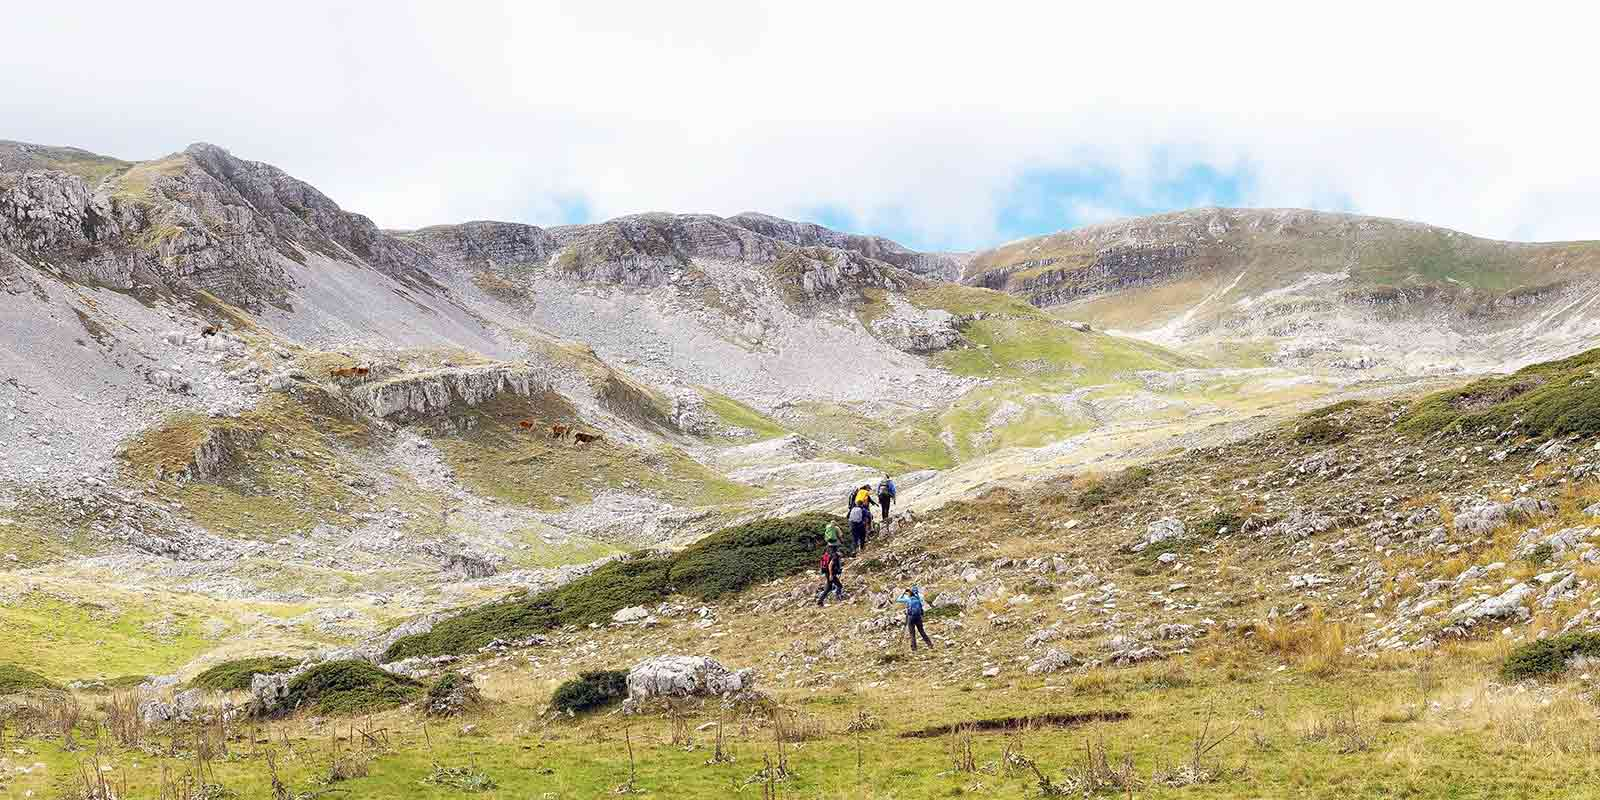 Hikers walking in a valley in the Abruzzo region of Italy